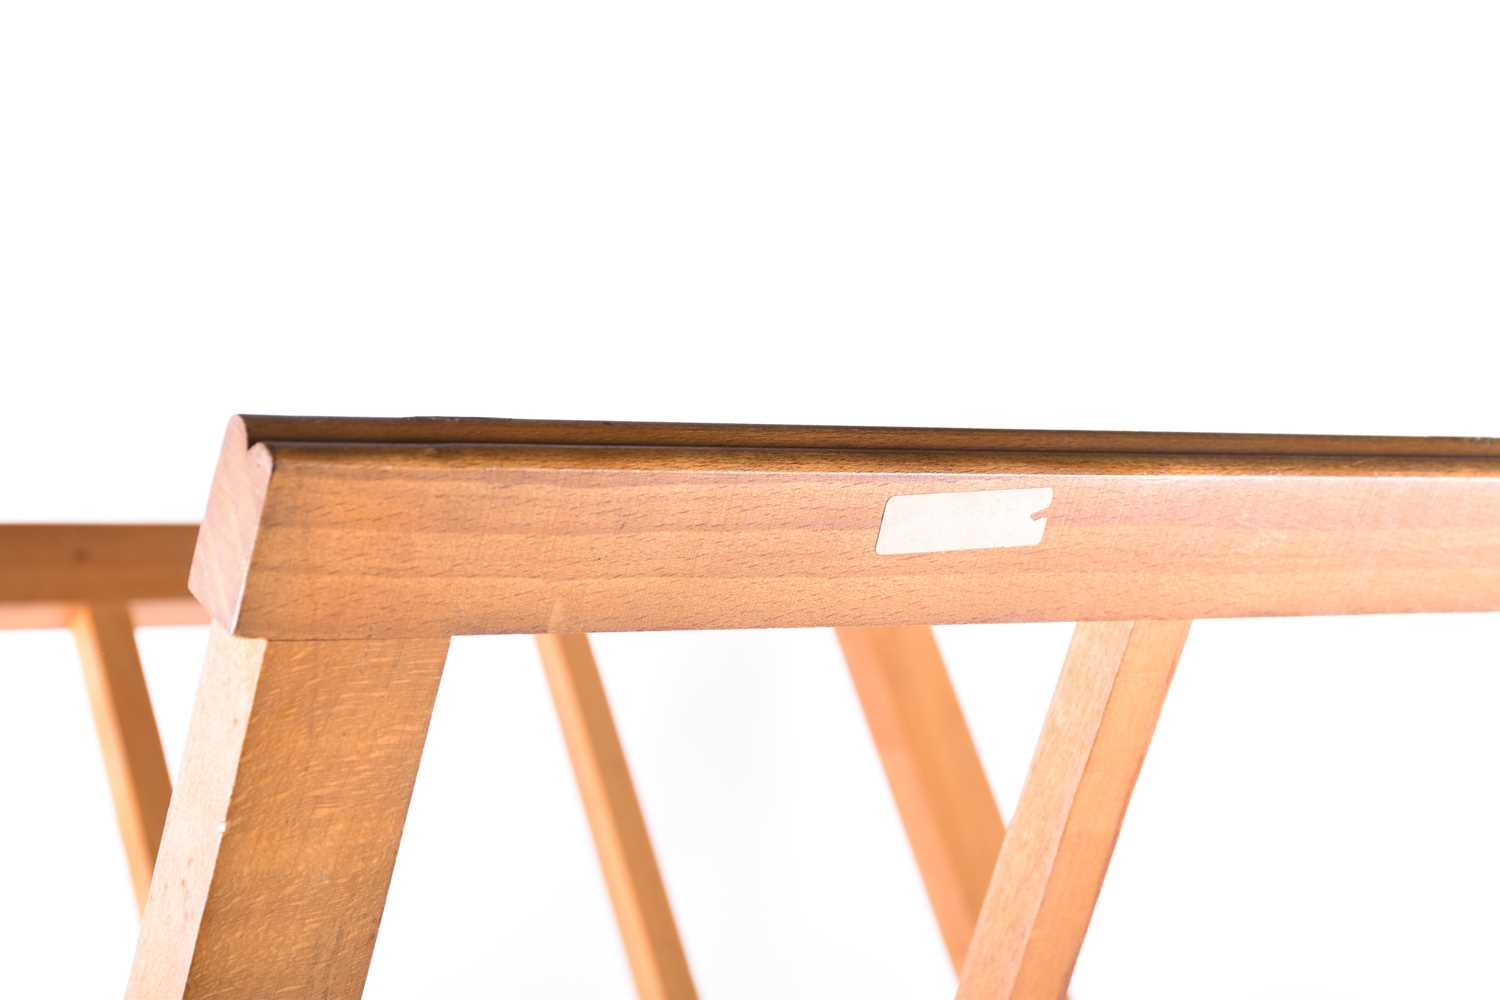 Lot 57 - A mid-20th-century wooden folio browser stand of X frame shape, bearing the address label of 'Franco